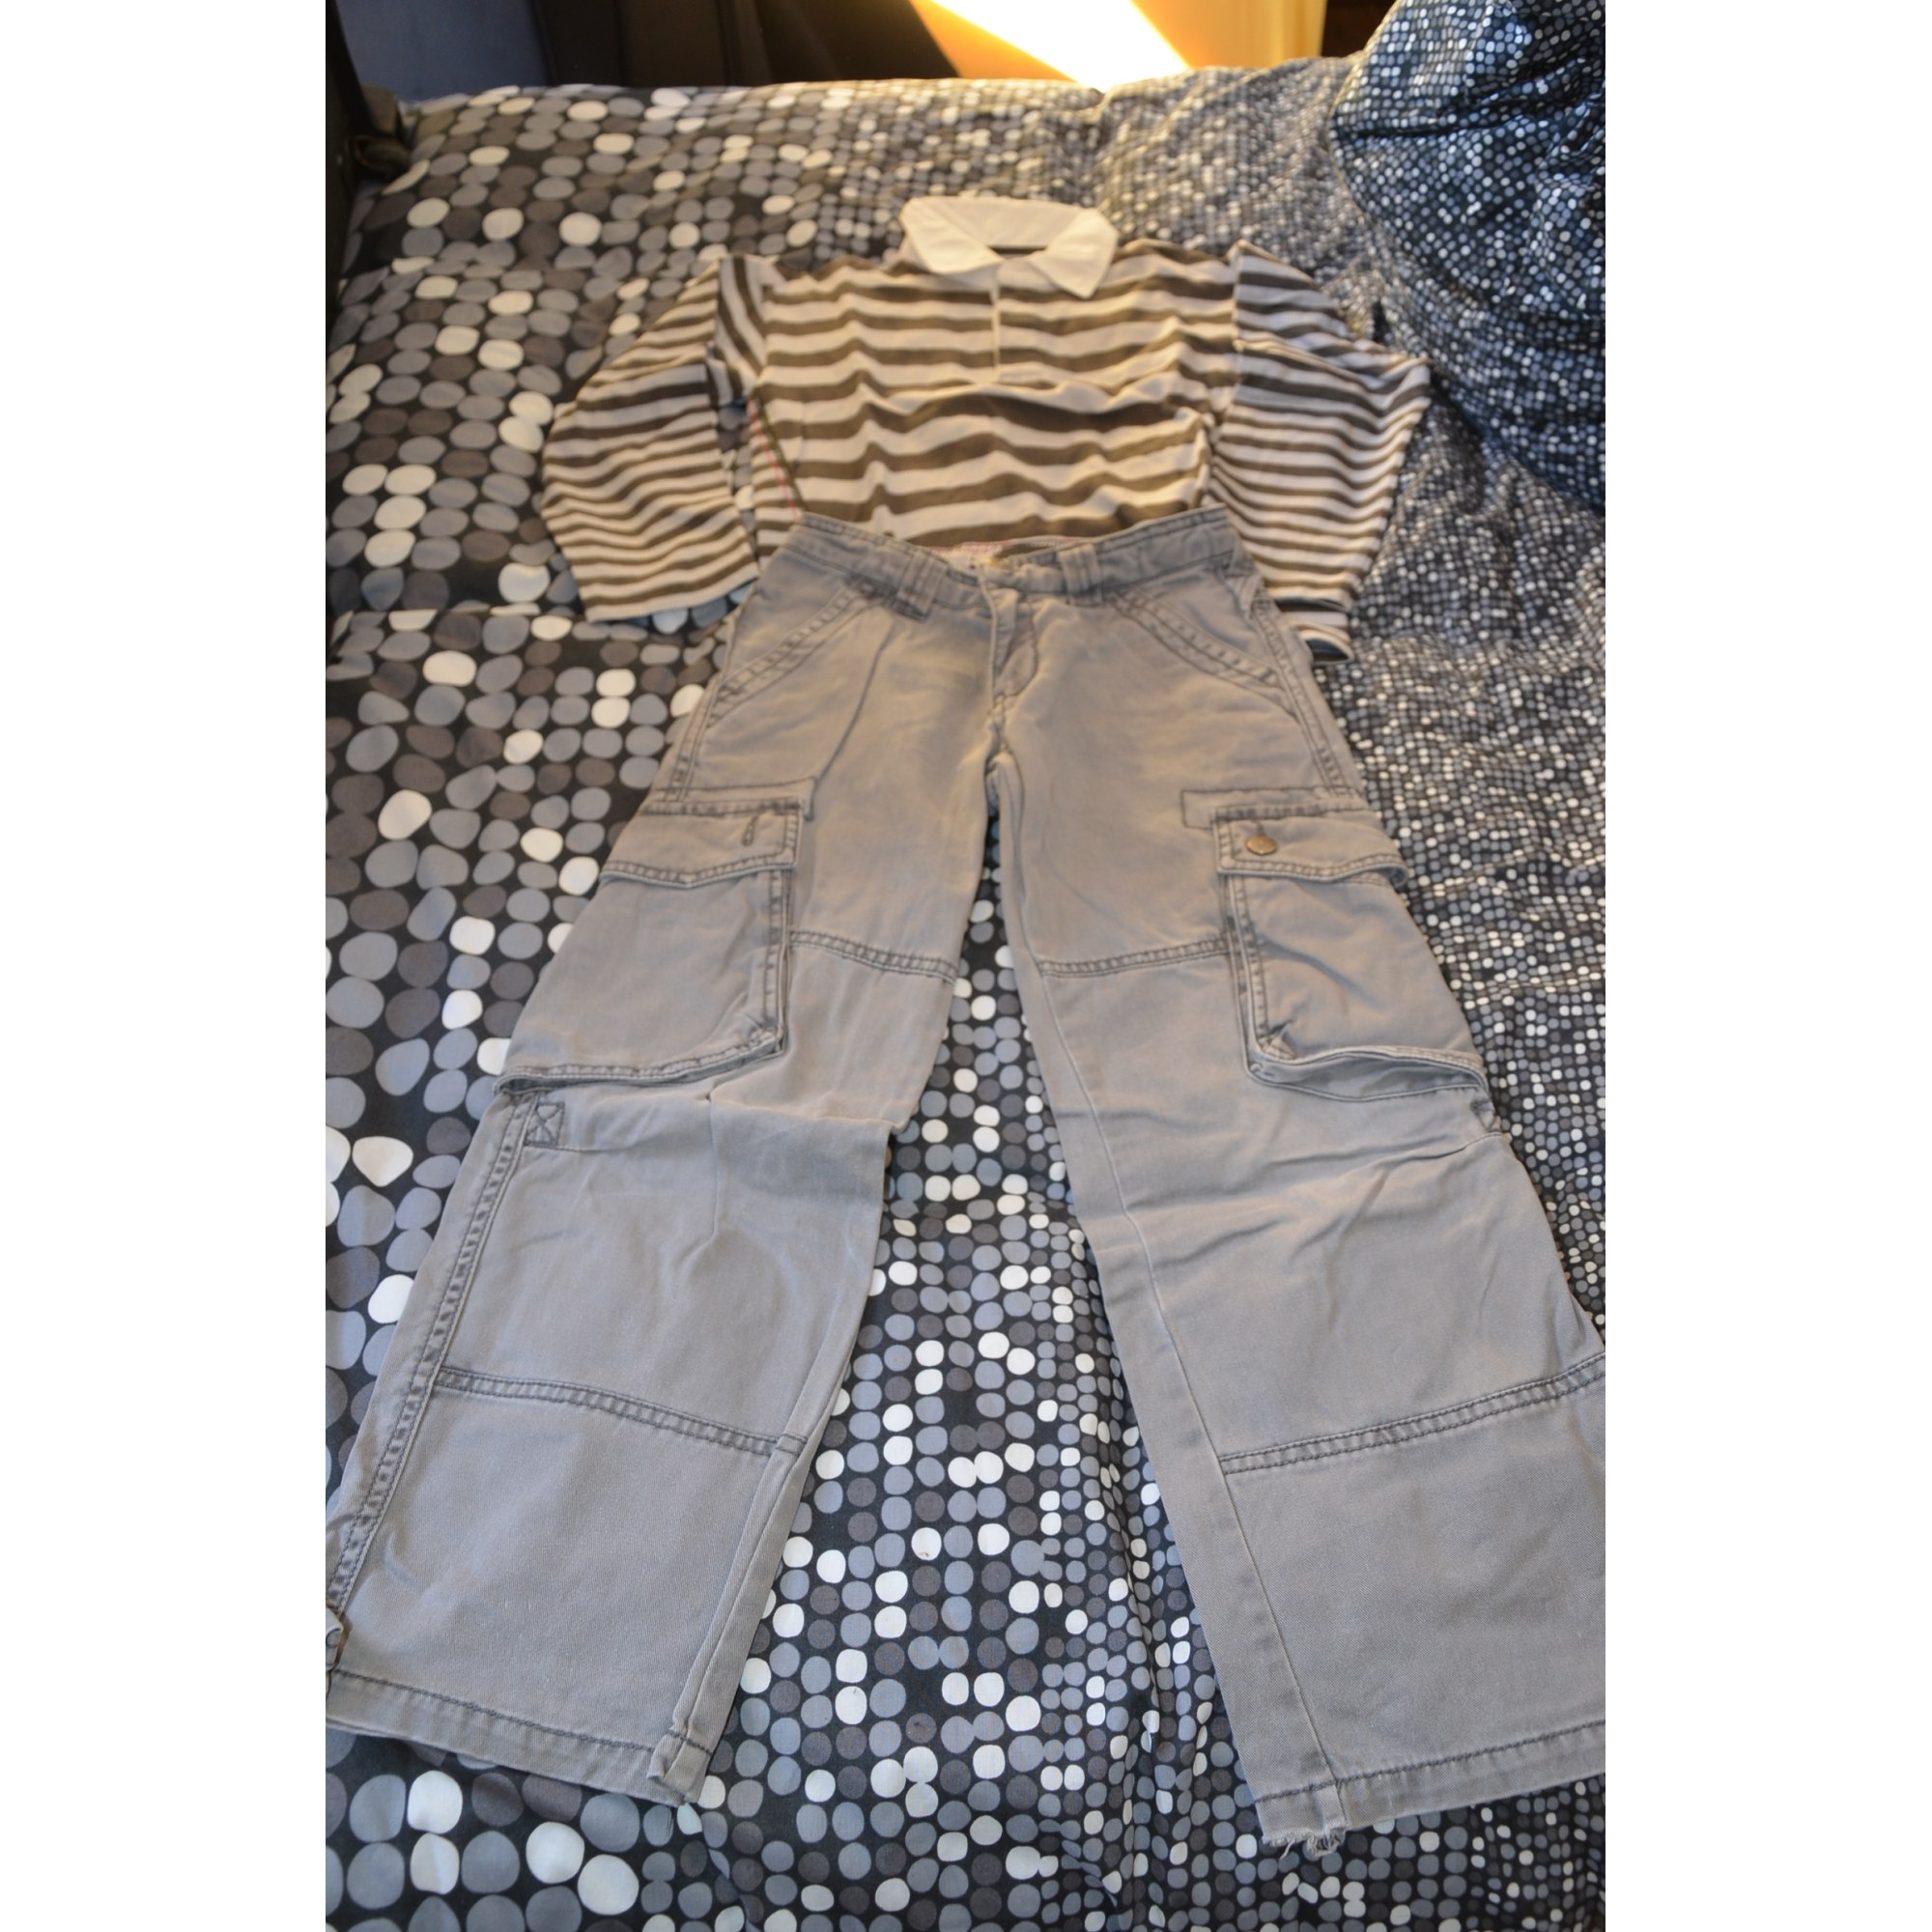 Pants Set, Outfit MEXX Gray, charcoal